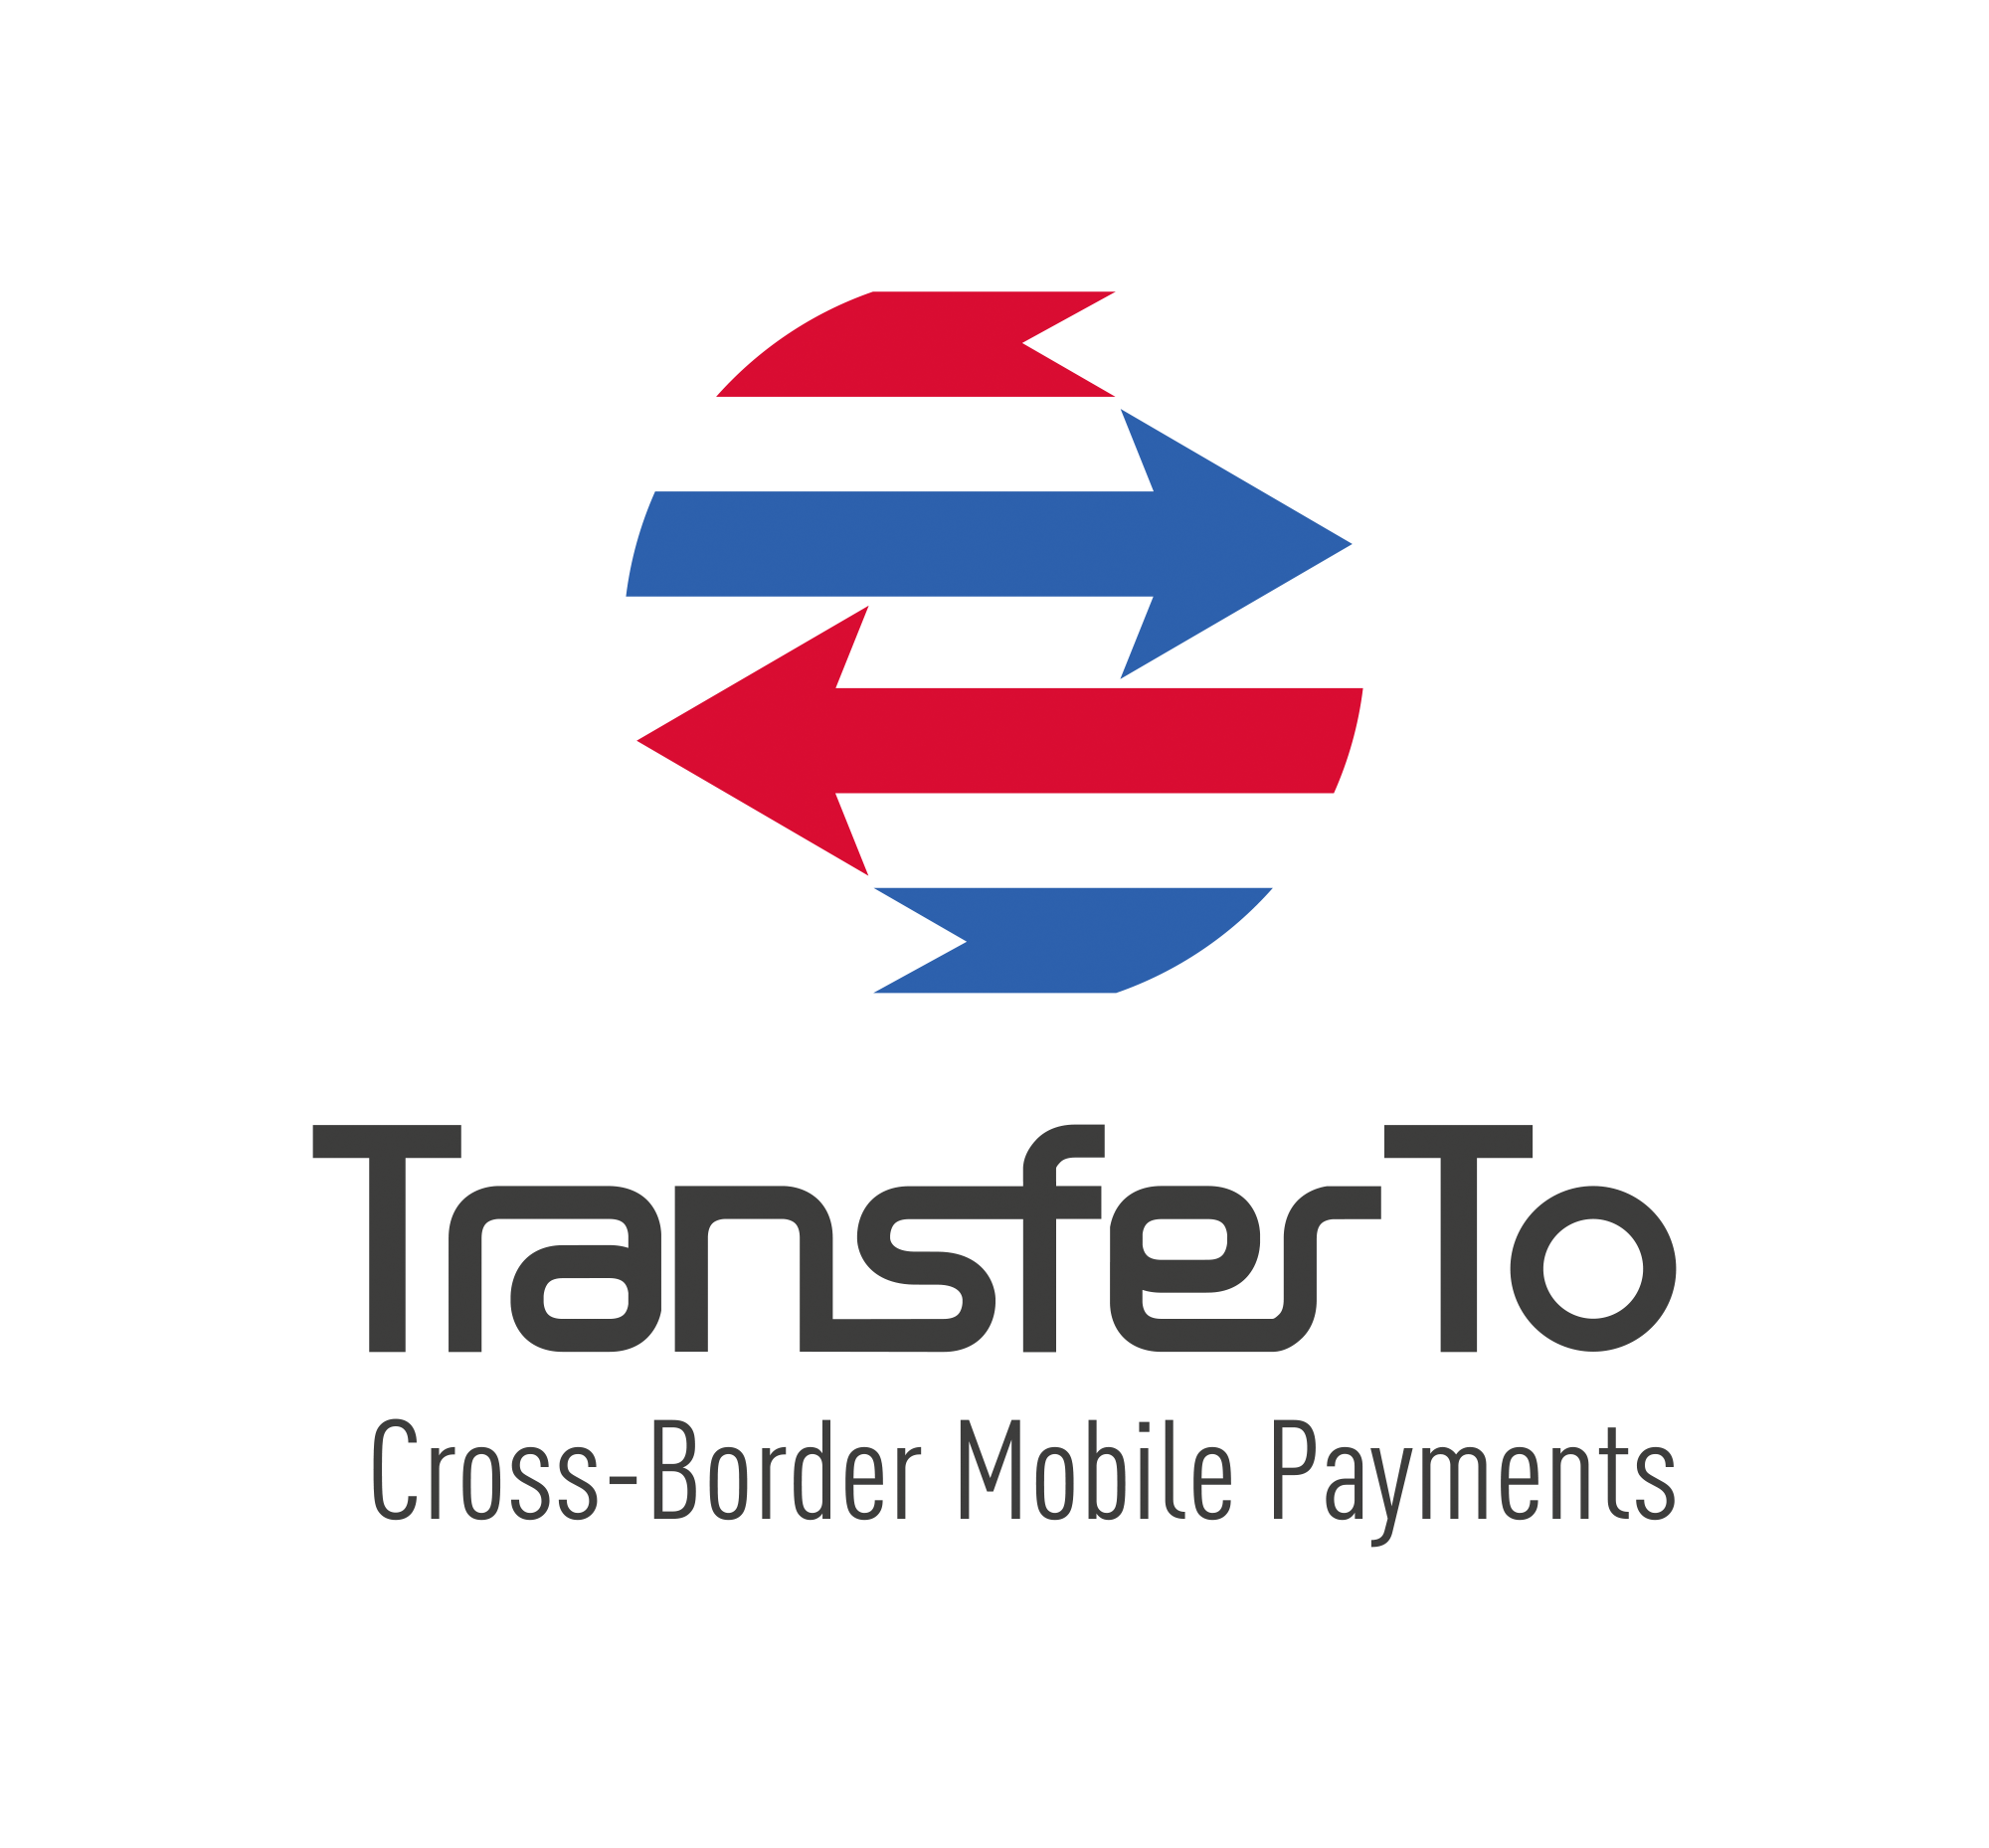 logo_transferto_2016_vertical_color.png